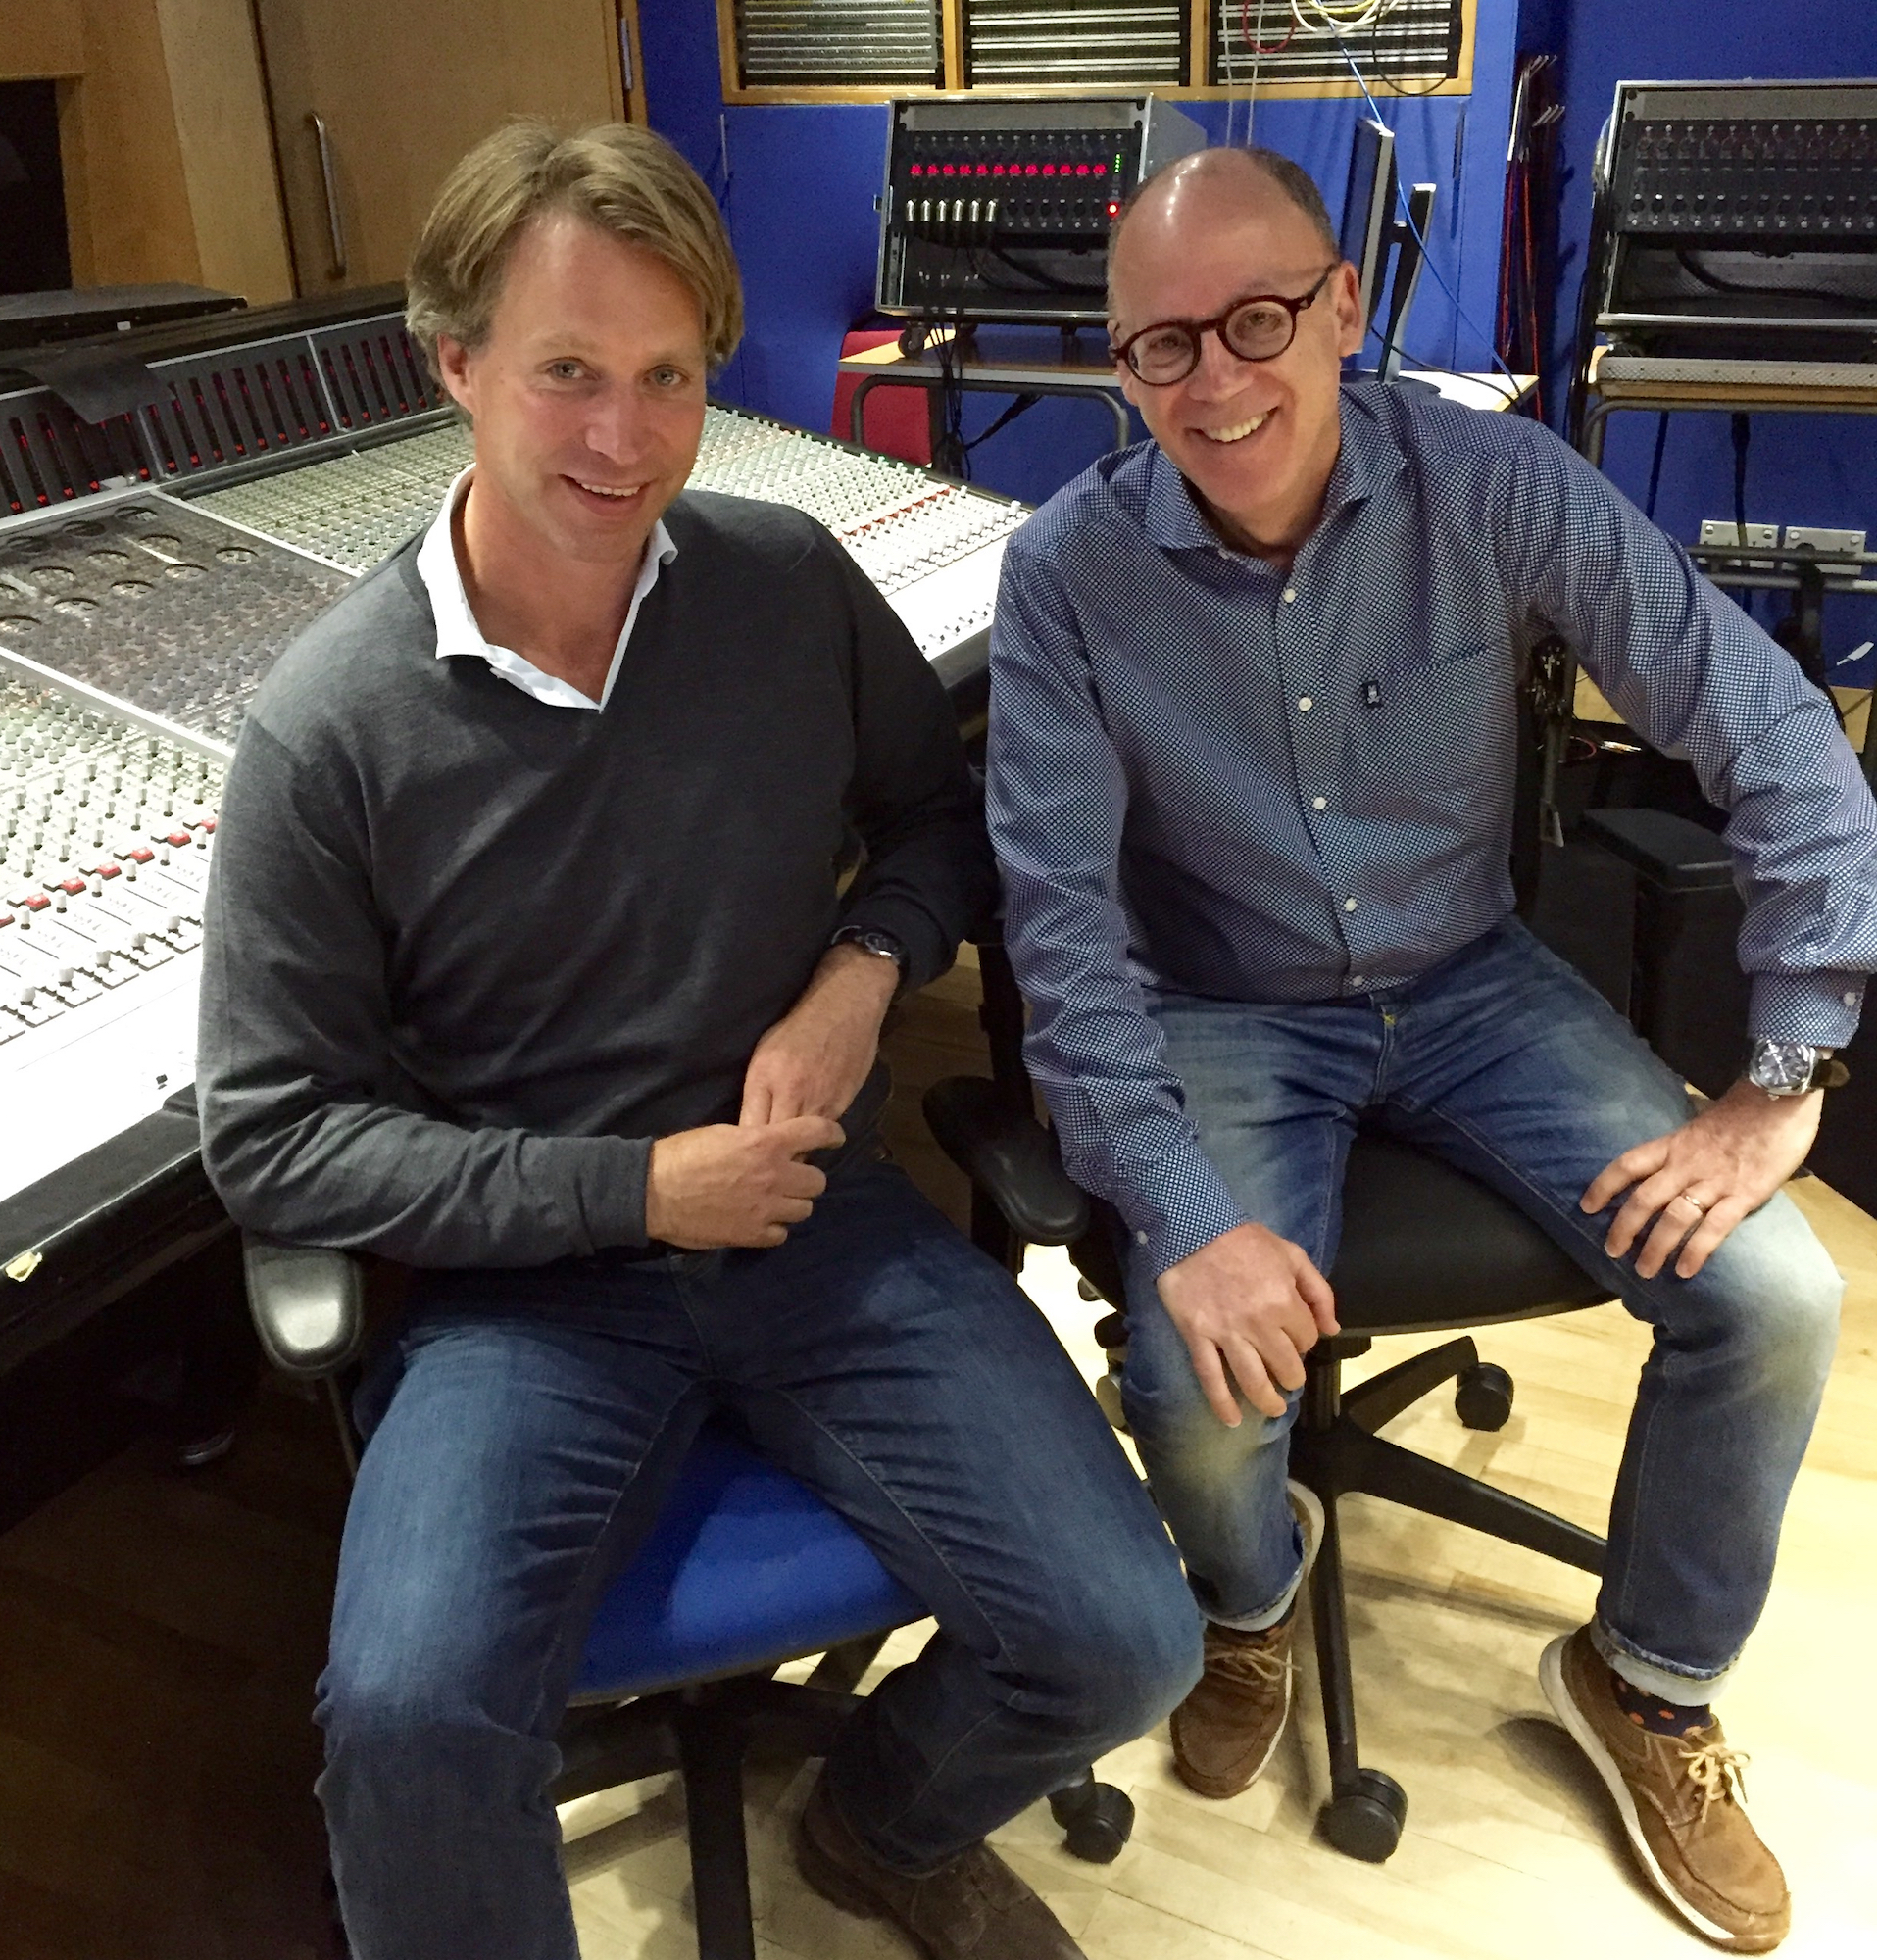 Martin with Best Classic Bands' Founder Greg Brodsky at Abbey Road Studios, October 2016 (From the collection of Greg Brodsky)